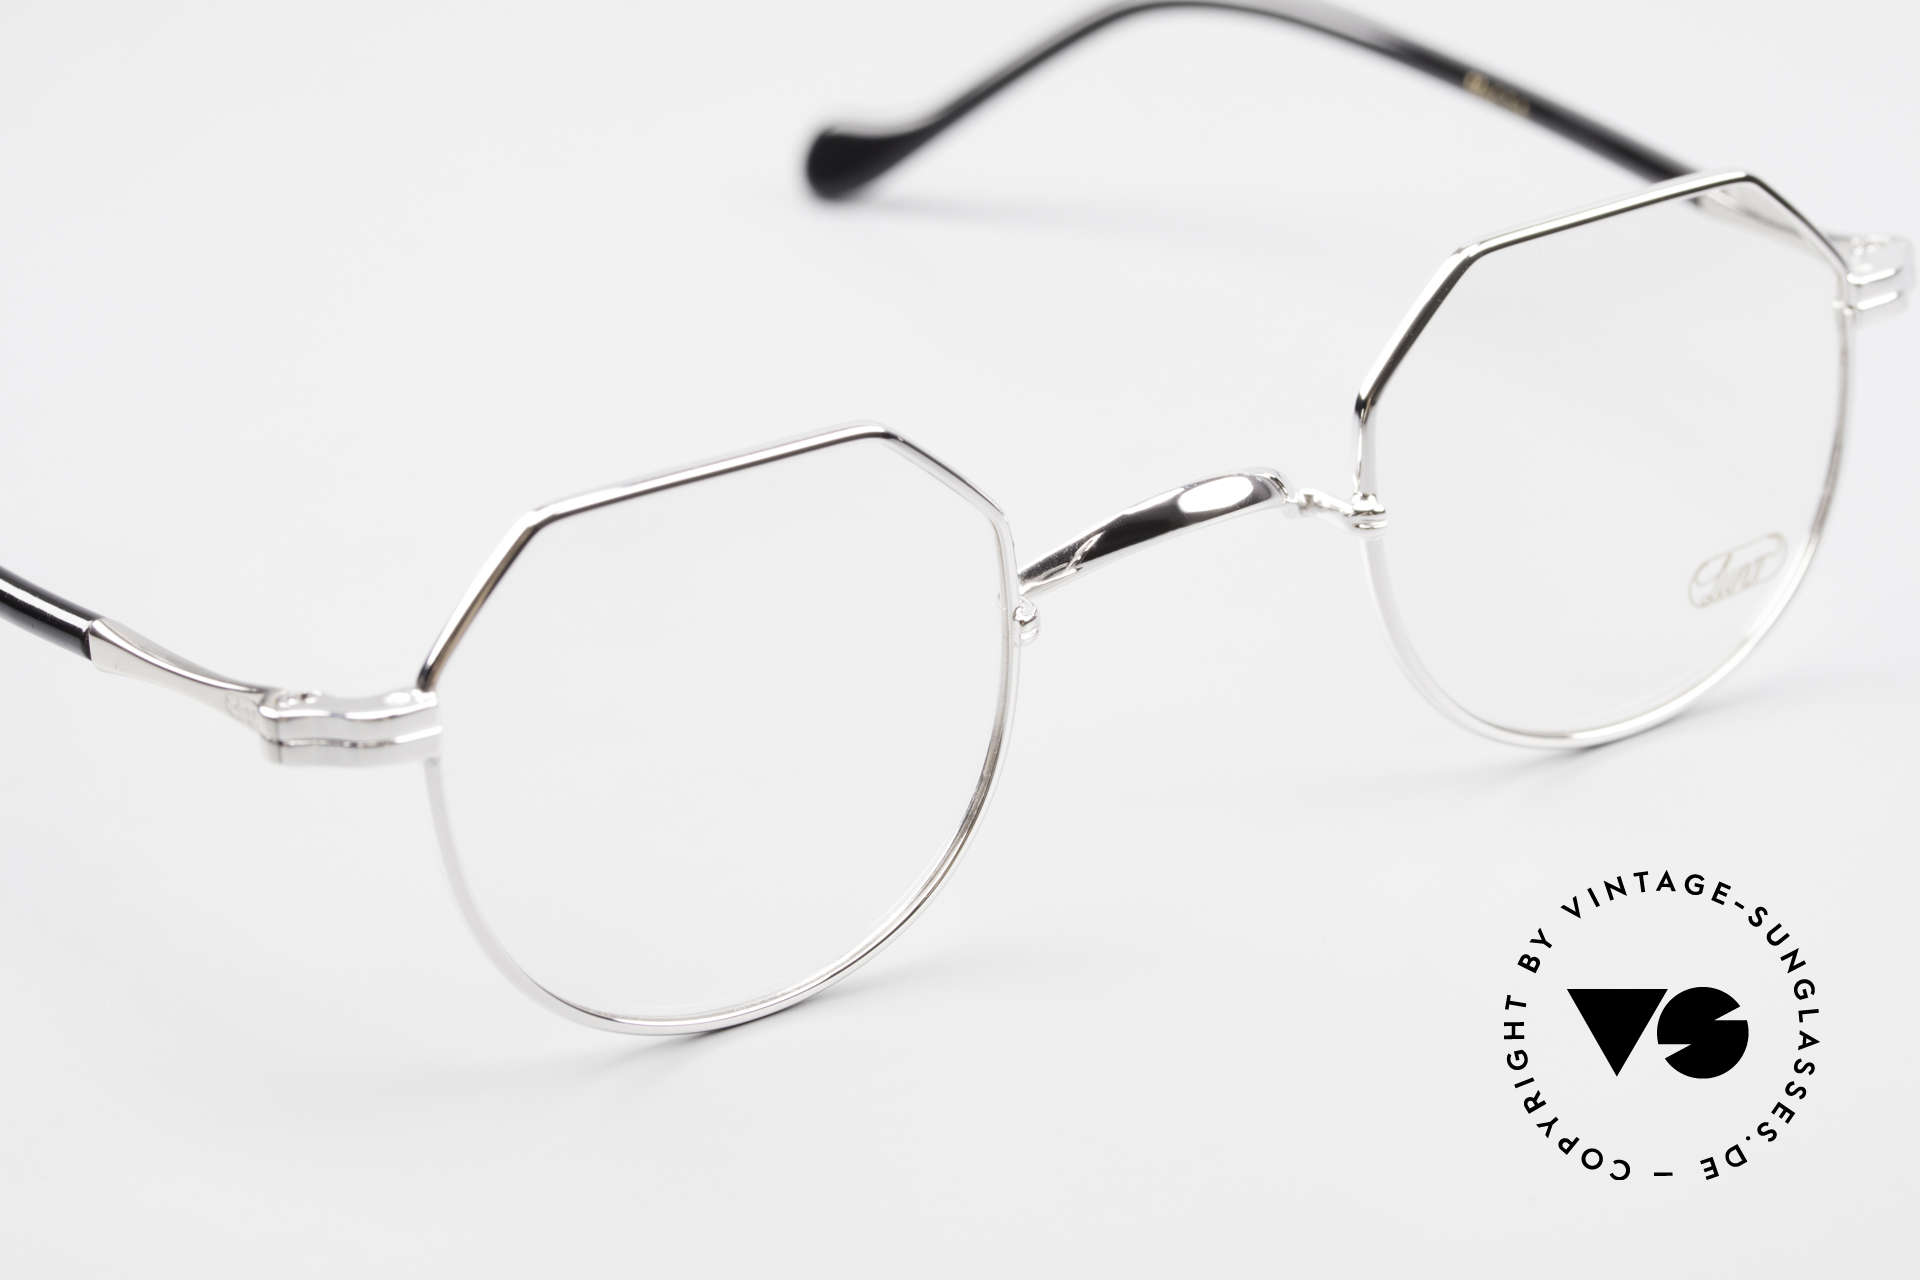 Lunor II A 18 Square Panto Frame Platinum, unworn RARITY (for all lovers of quality) from app. 2010, Made for Men and Women